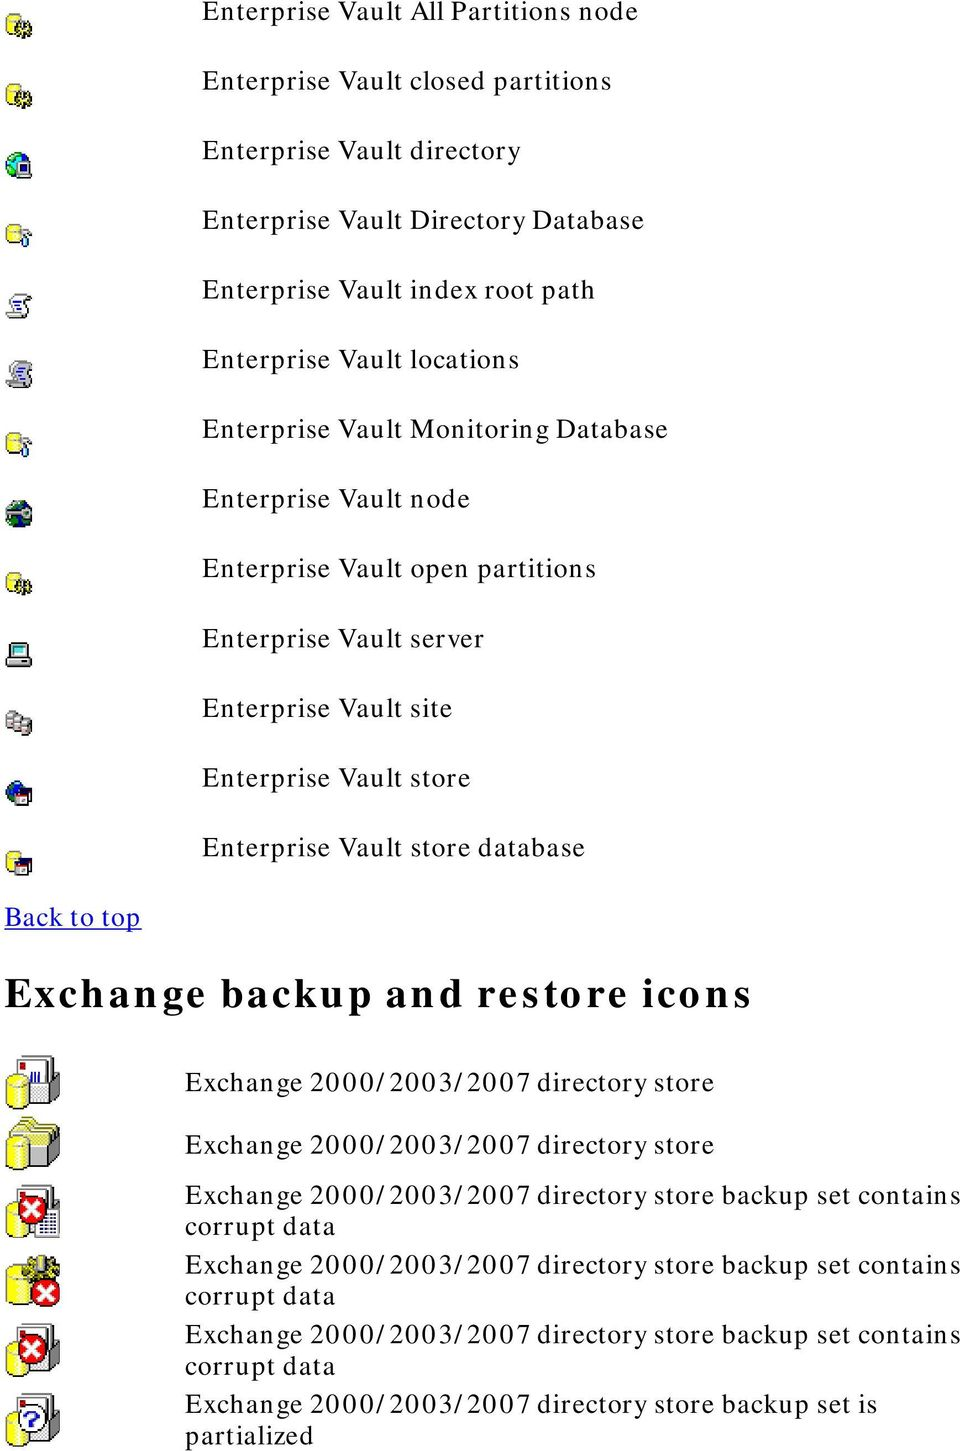 Exchange backup and restore icons Exchange 2000/2003/2007 directory store Exchange 2000/2003/2007 directory store Exchange 2000/2003/2007 directory store backup set contains corrupt data Exchange